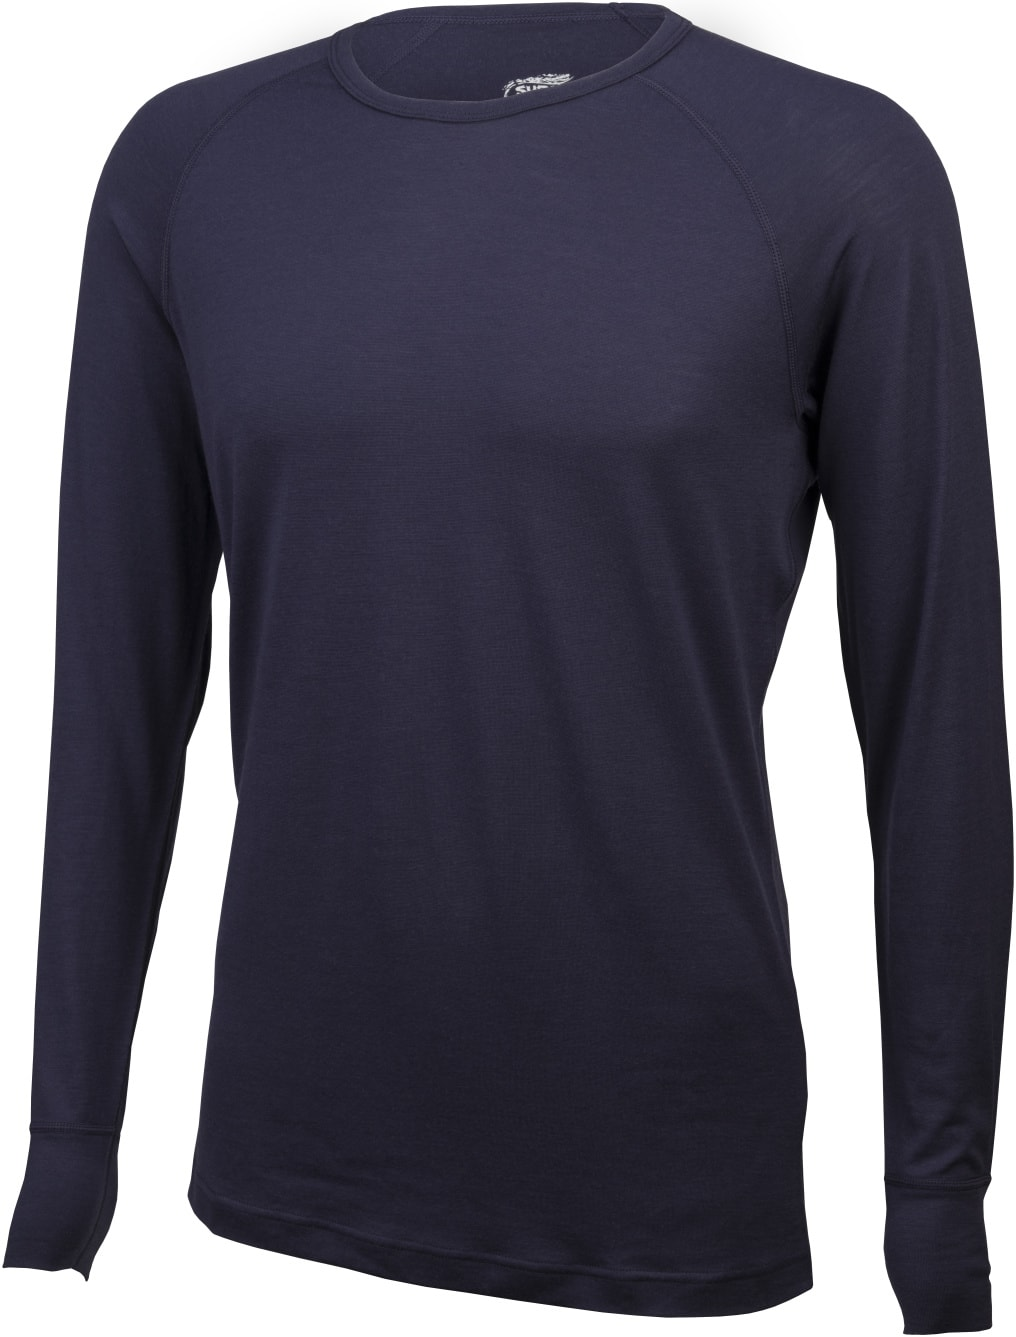 Surly Raglan long sleeve shirt - navy blue - front view